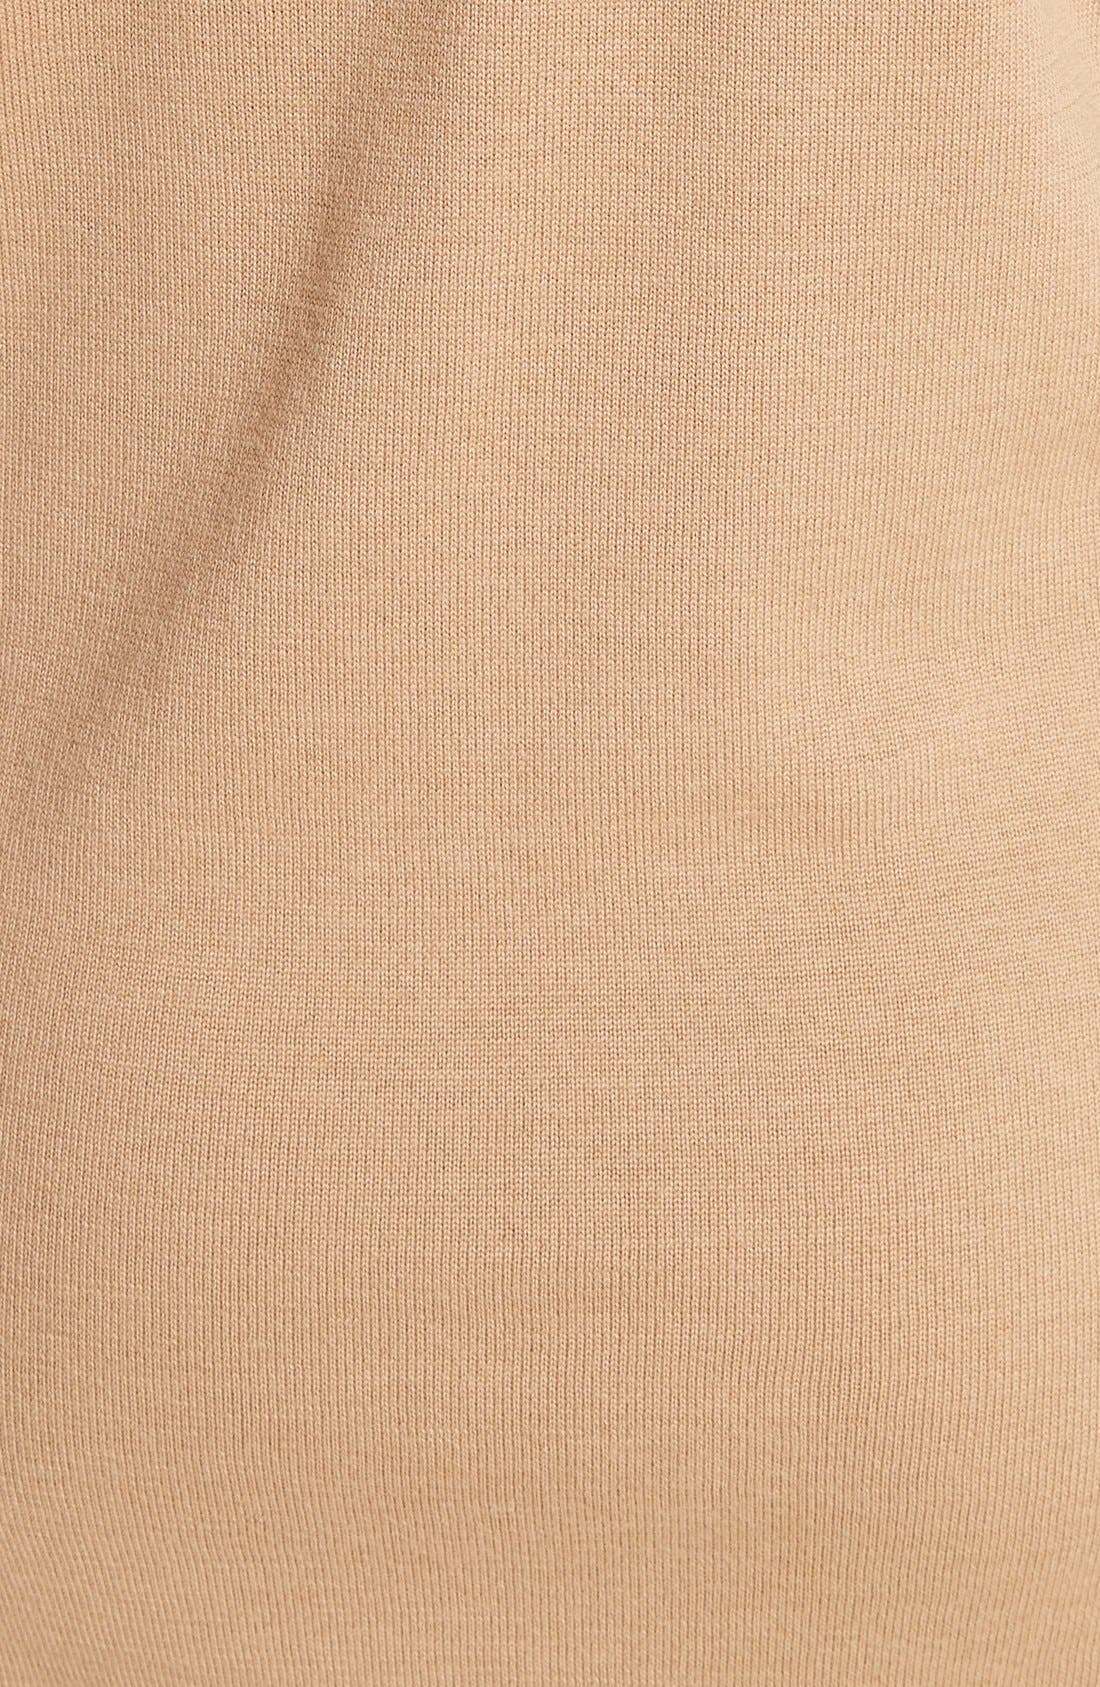 BURBERRY, Alewater Elbow Patch Merino Wool Dress, Alternate thumbnail 8, color, CAMEL